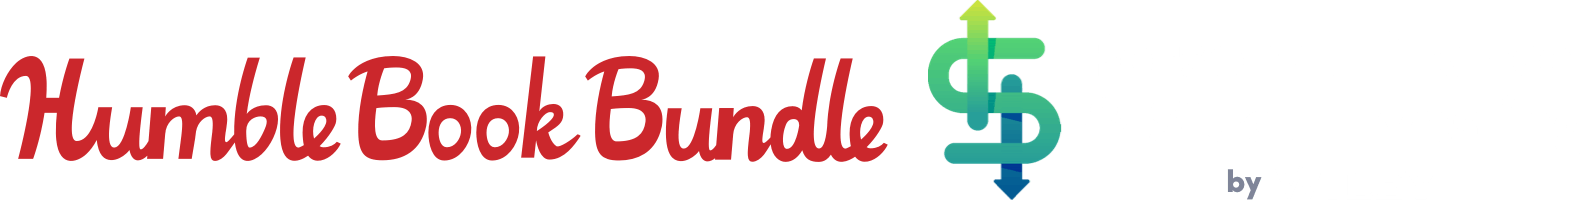 Humble Book Bundle: Personal Finance & Stock Investing by Wiley